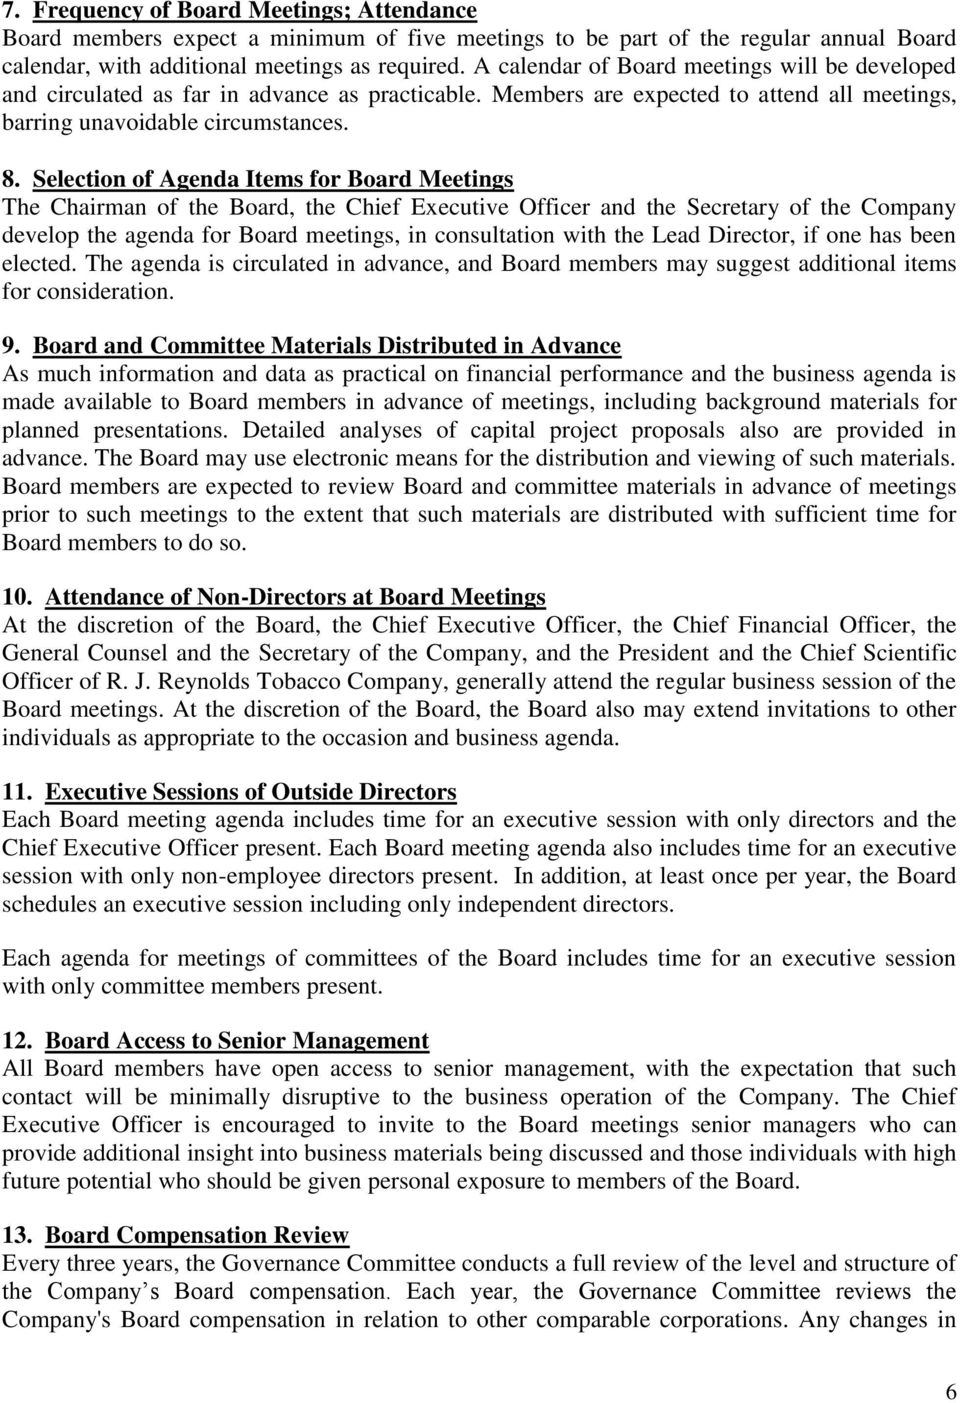 Selection of Agenda Items for Board Meetings The Chairman of the Board, the Chief Executive Officer and the Secretary of the Company develop the agenda for Board meetings, in consultation with the